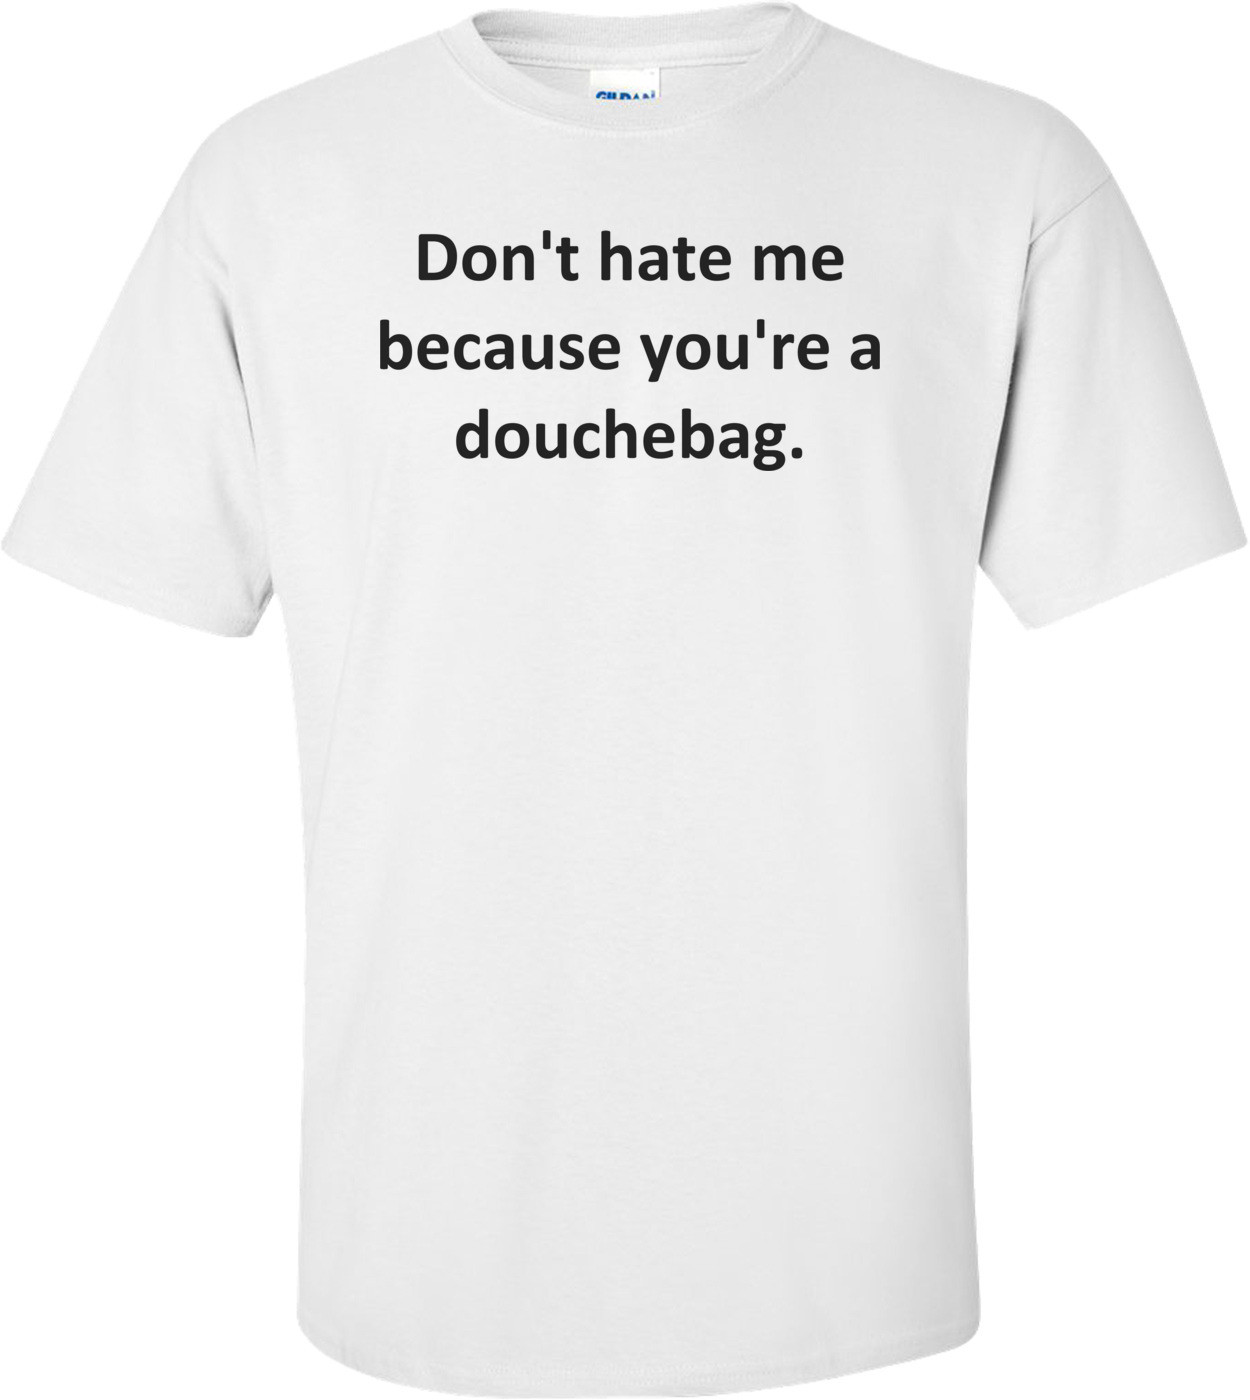 Don't hate me because you're a douchebag. Shirt